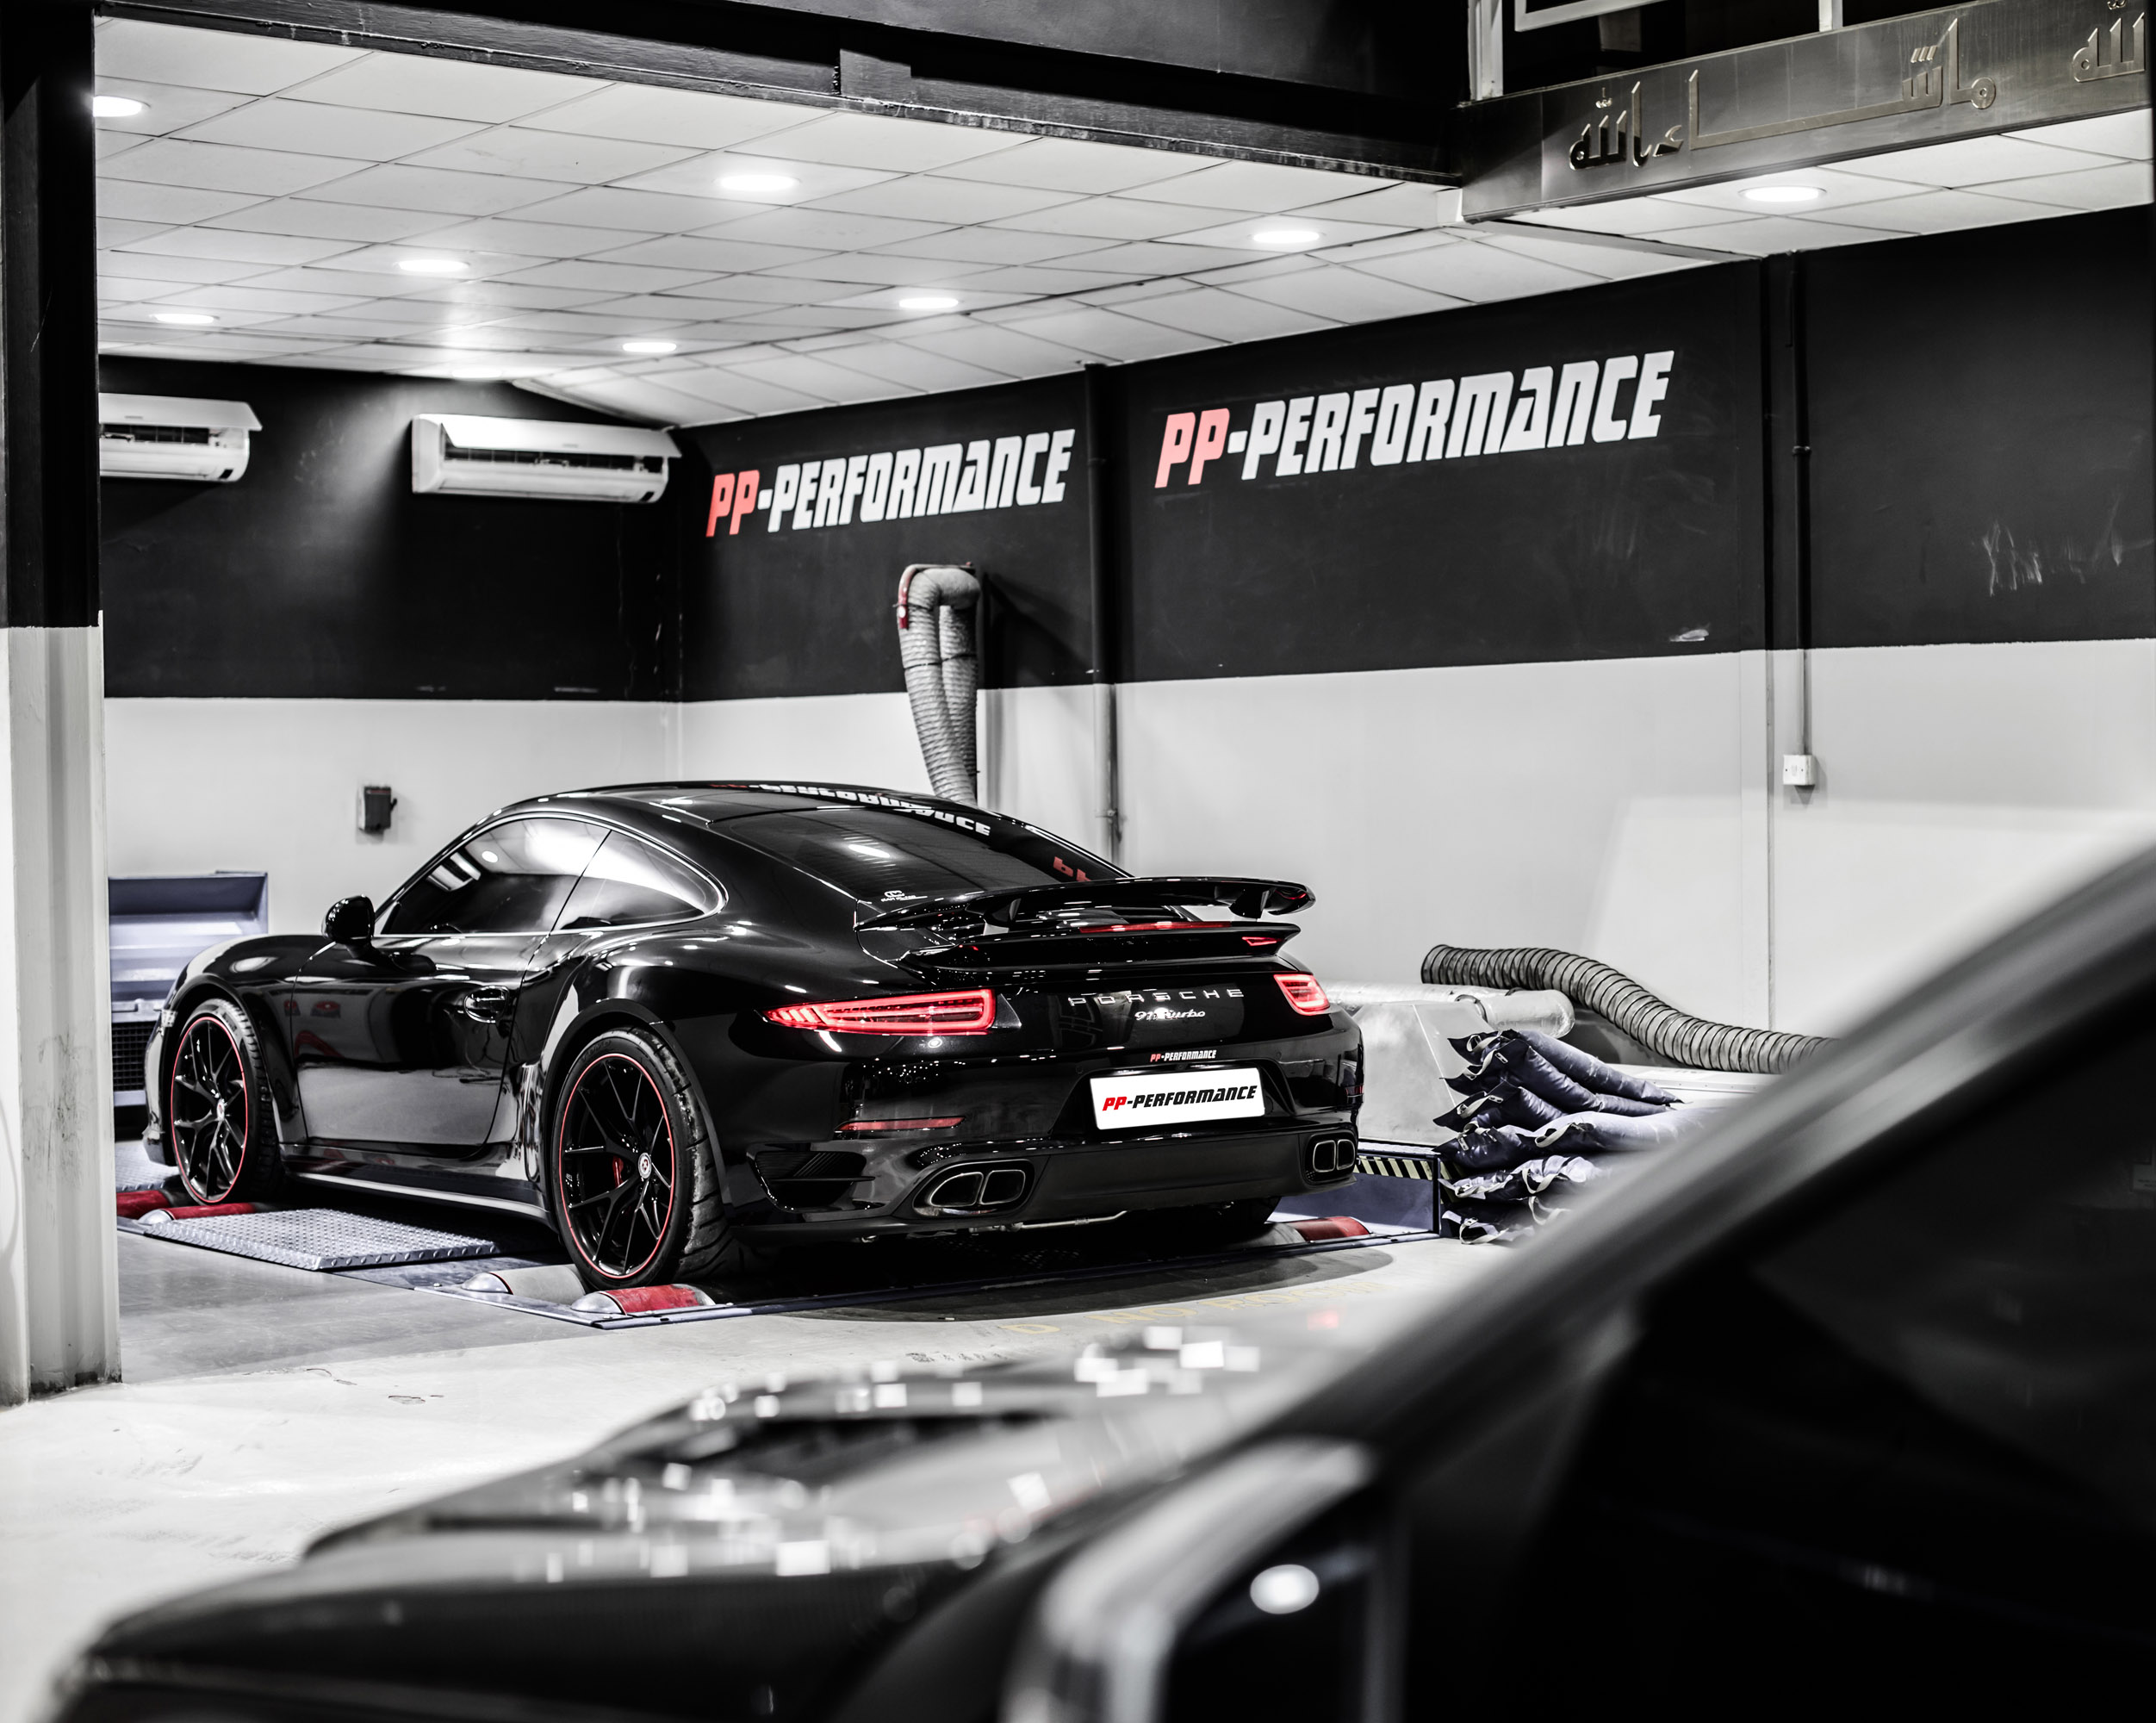 2015-pp-performance-porsche-911-turbo-05 Mesmerizing Porsche 911 Turbo Vs Z06 Cars Trend